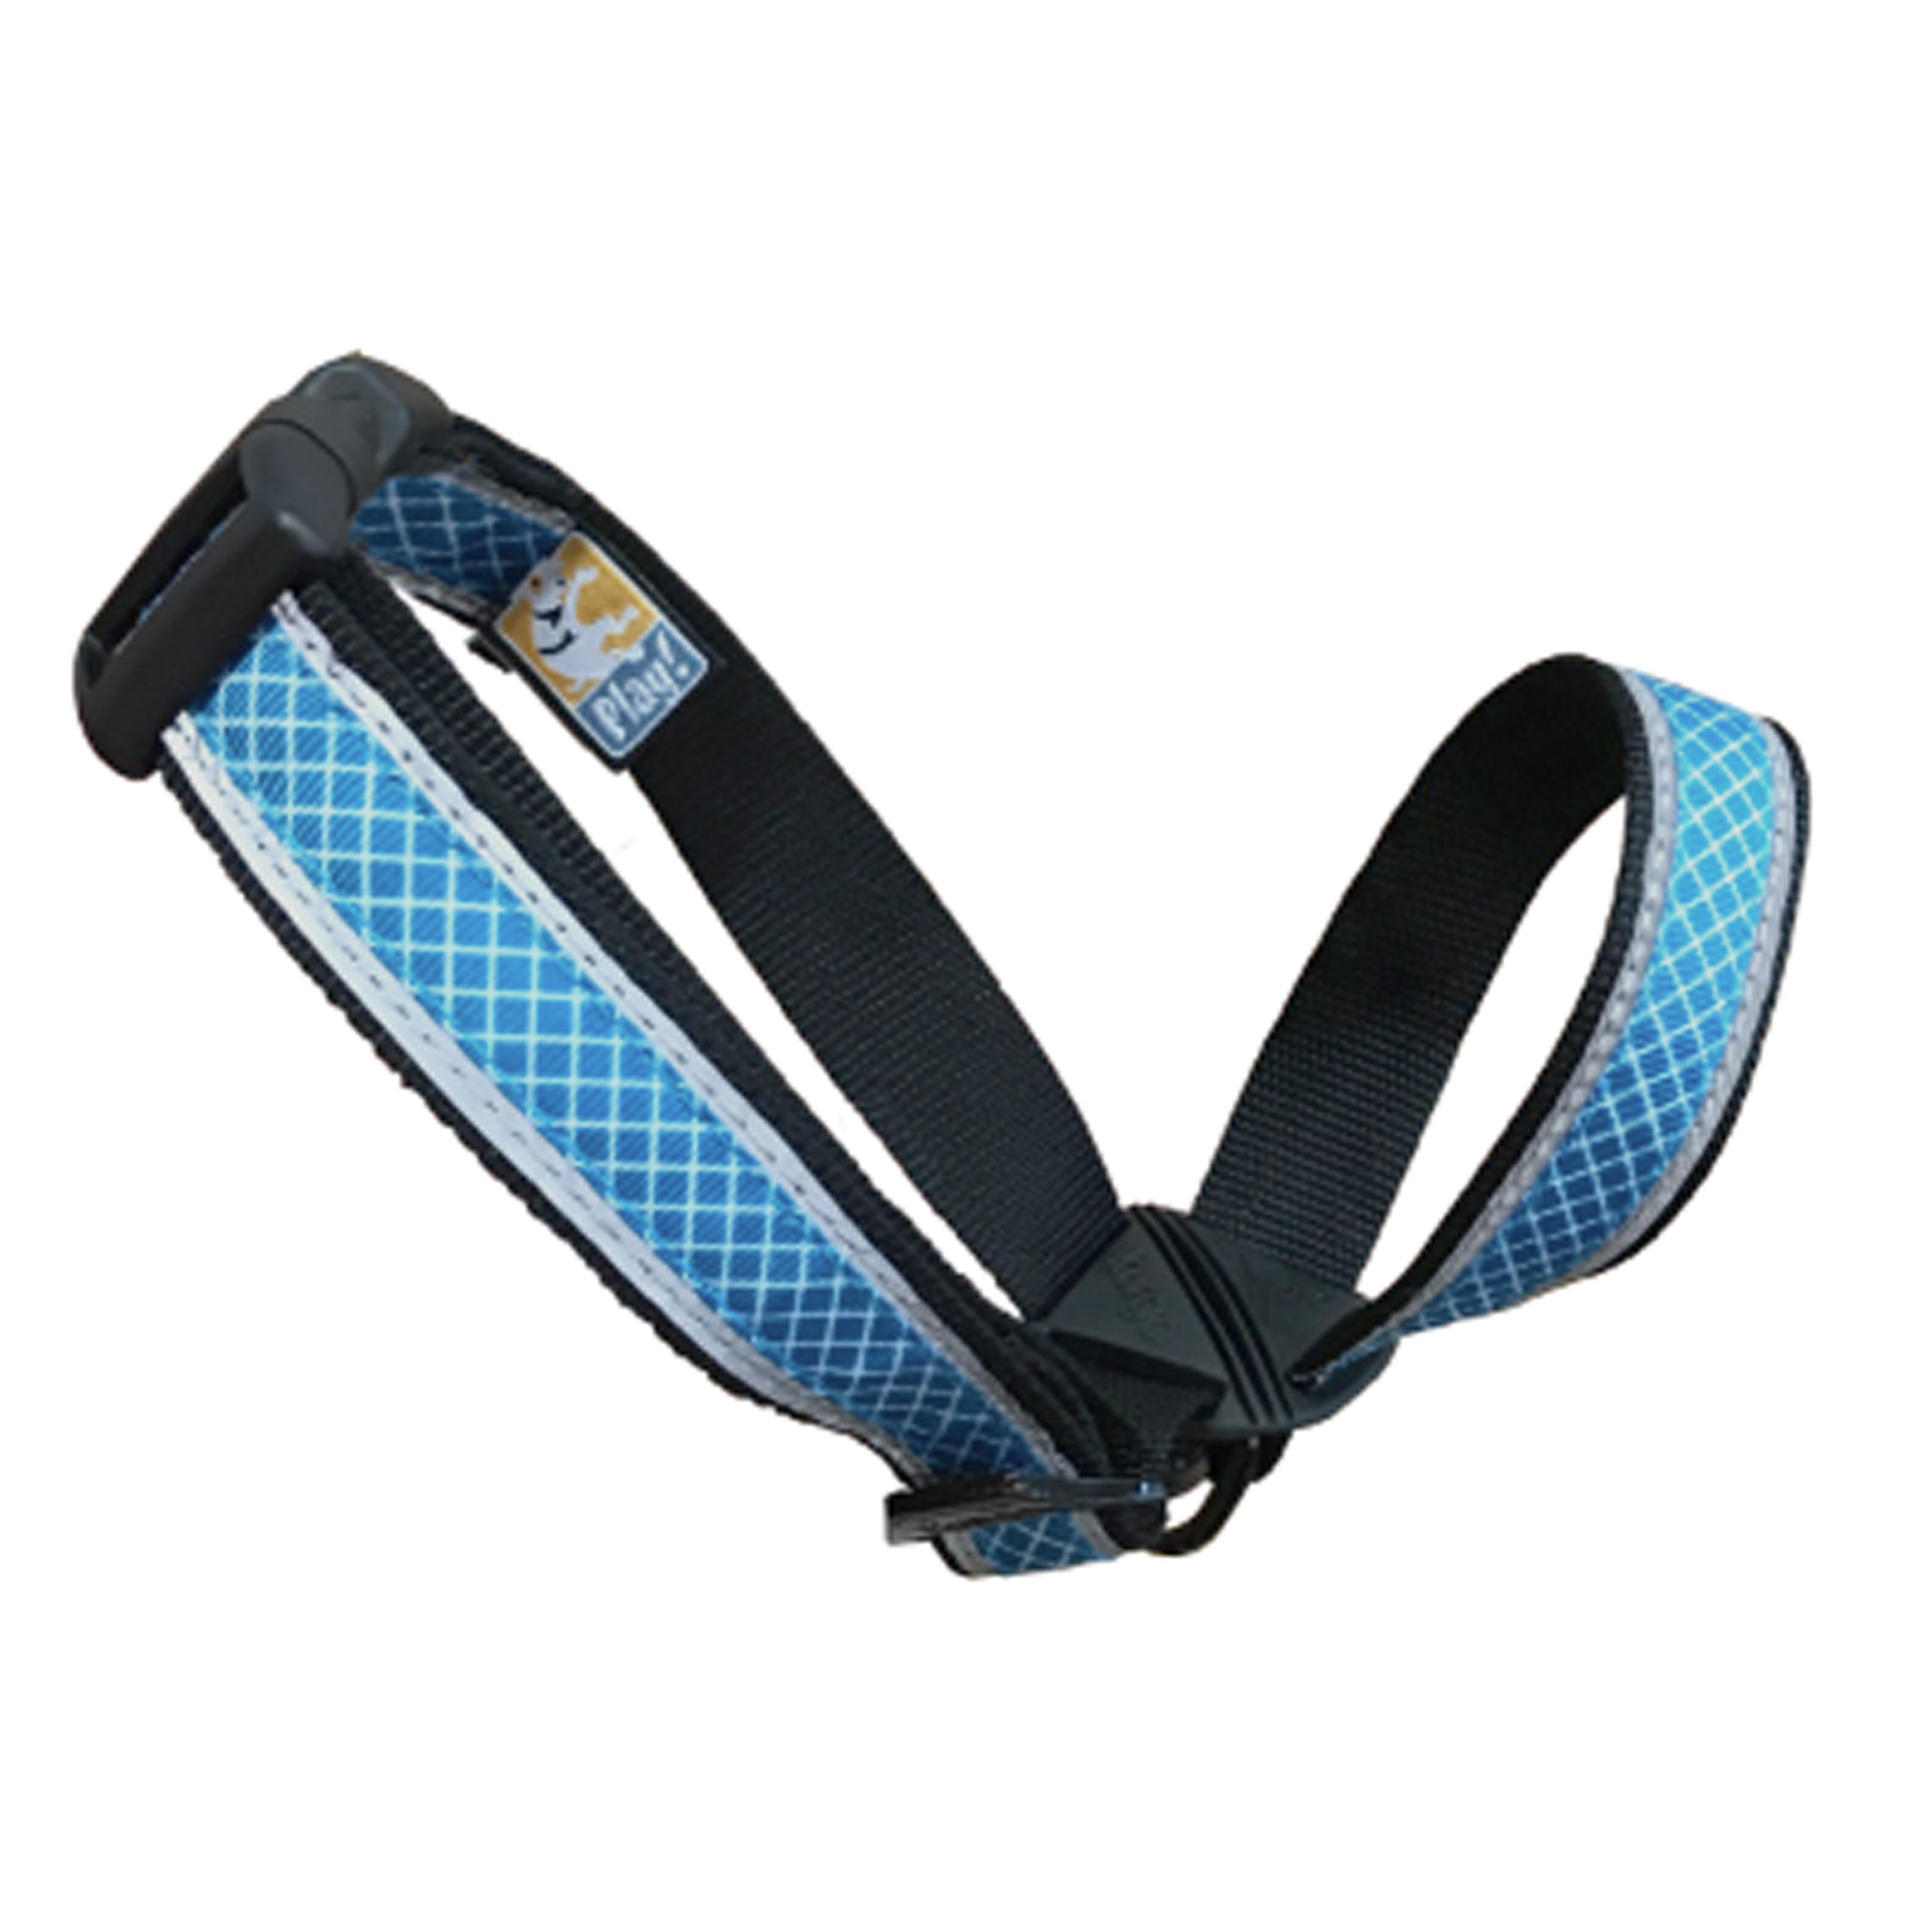 Kurgo Snout About Dog Head Halter | Headcollar for Dogs | No Pull Dog Training Collar | Dog Training Tool | Gentle Control While Walking | Reflective Trim | Coastal Blue | Large by Kurgo